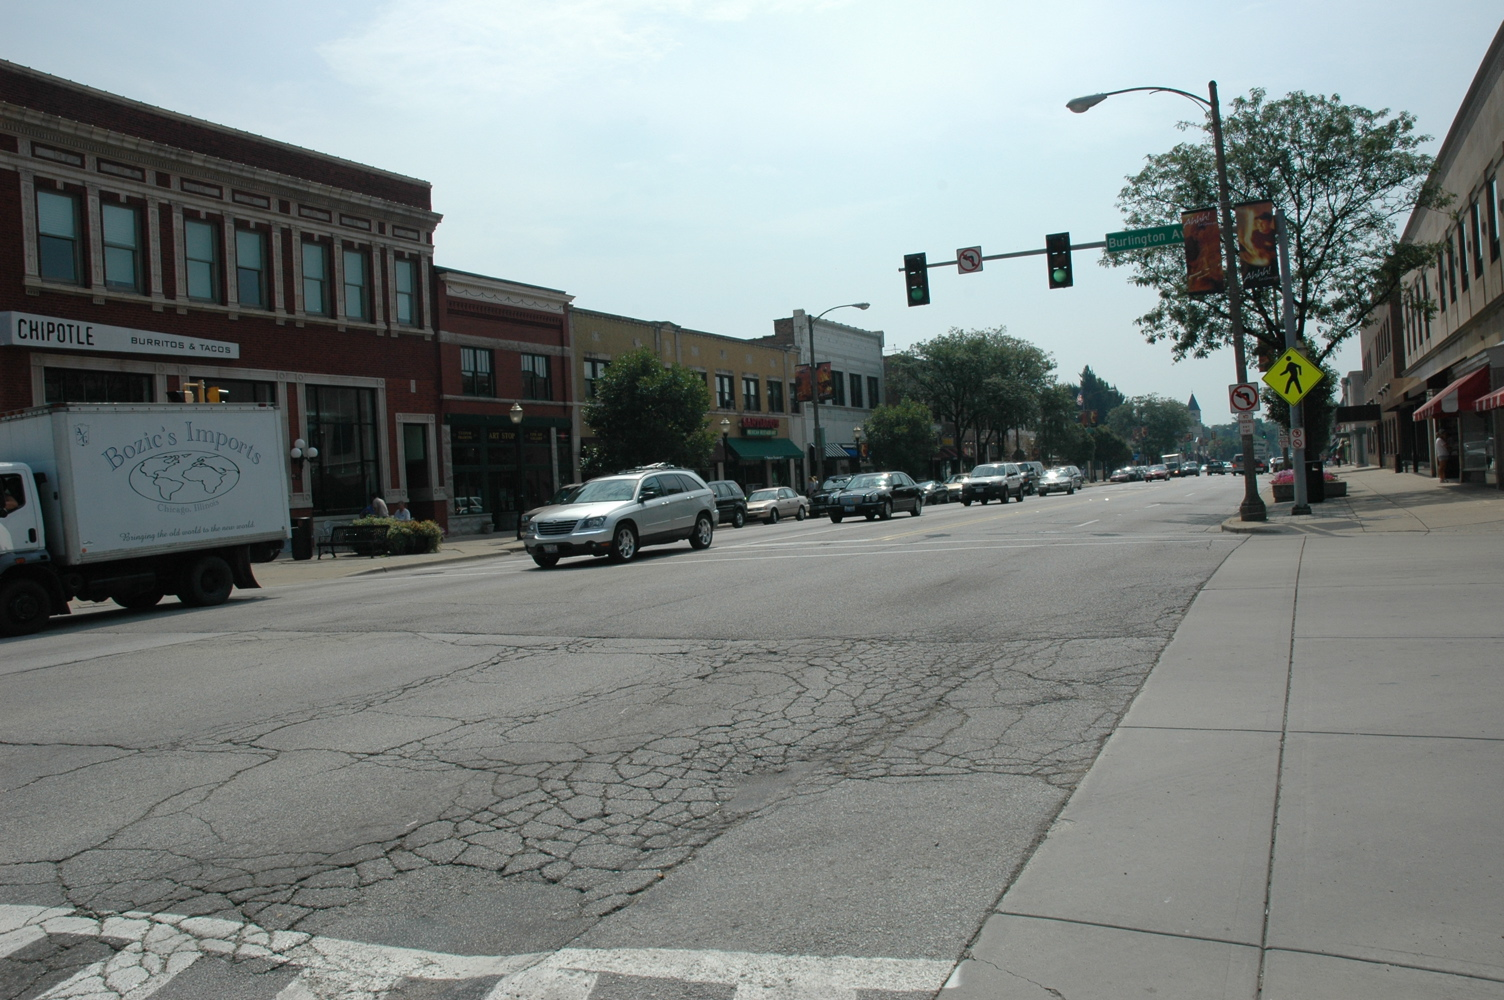 La_Grange,_Illinois_downtown